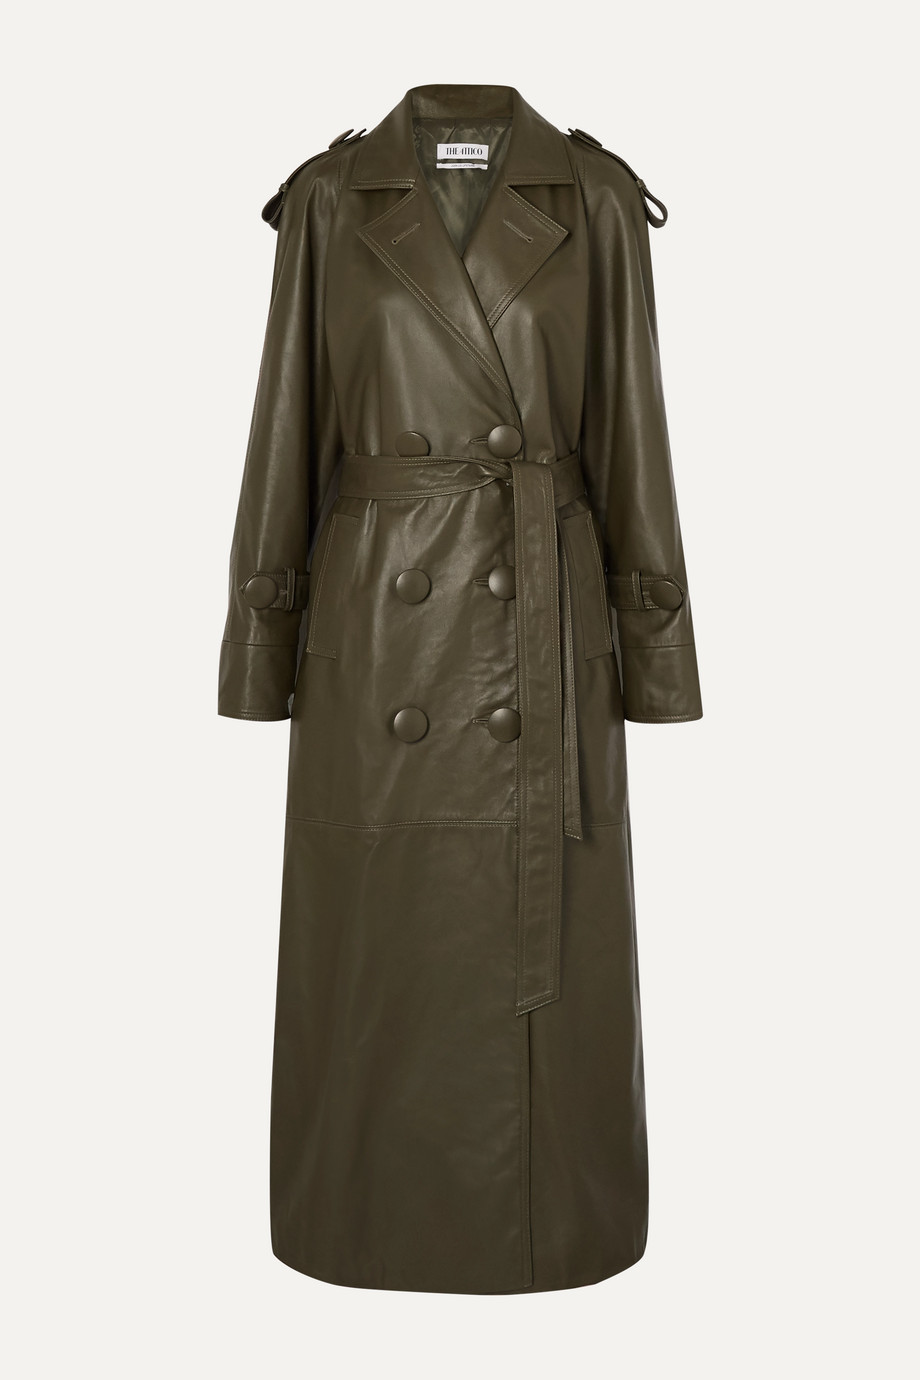 The Attico Belted leather trench coat